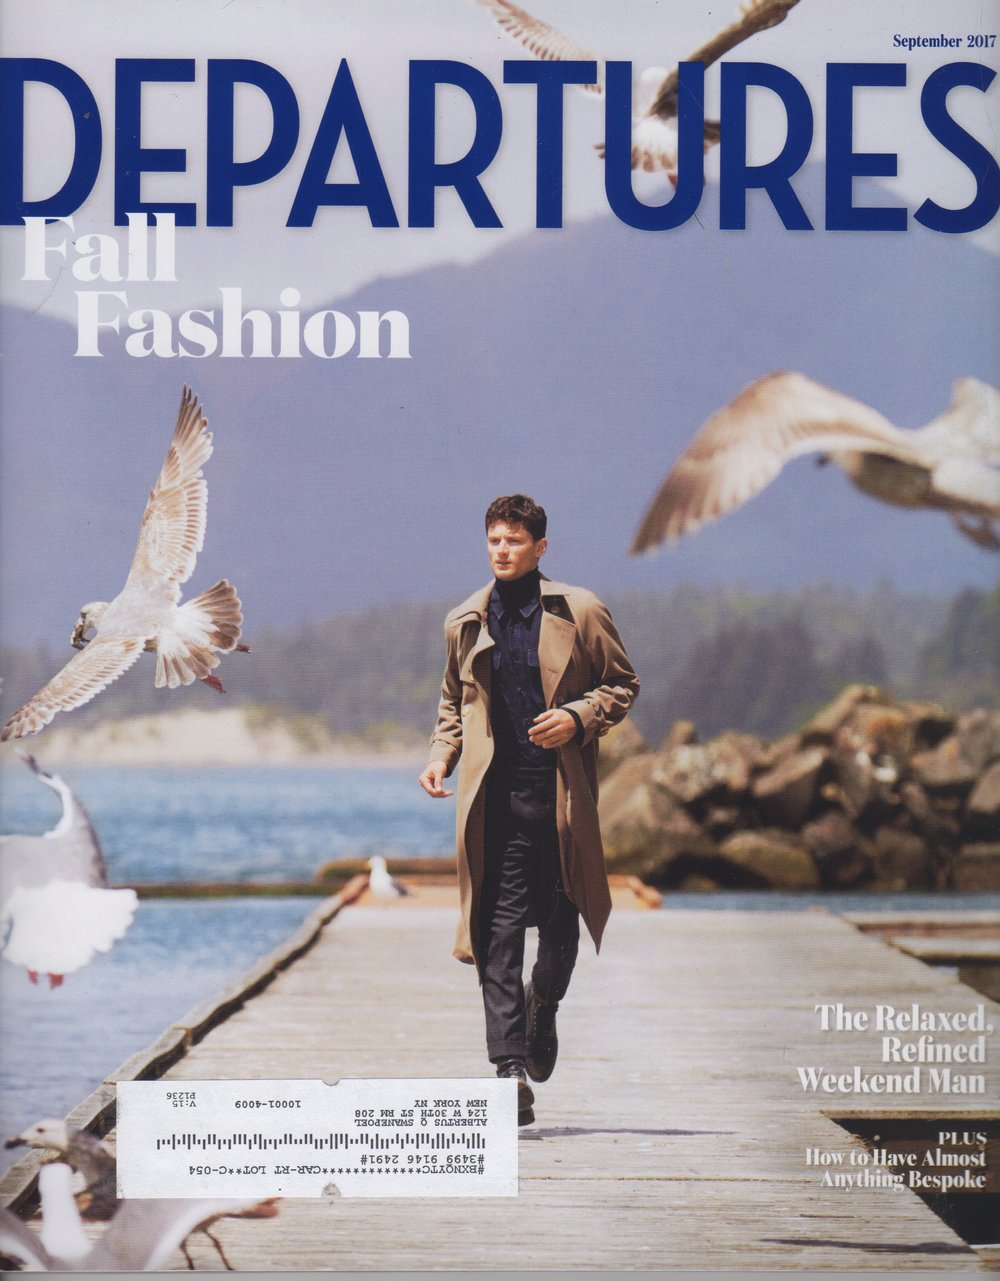 DeparturesSept17Cover.jpeg